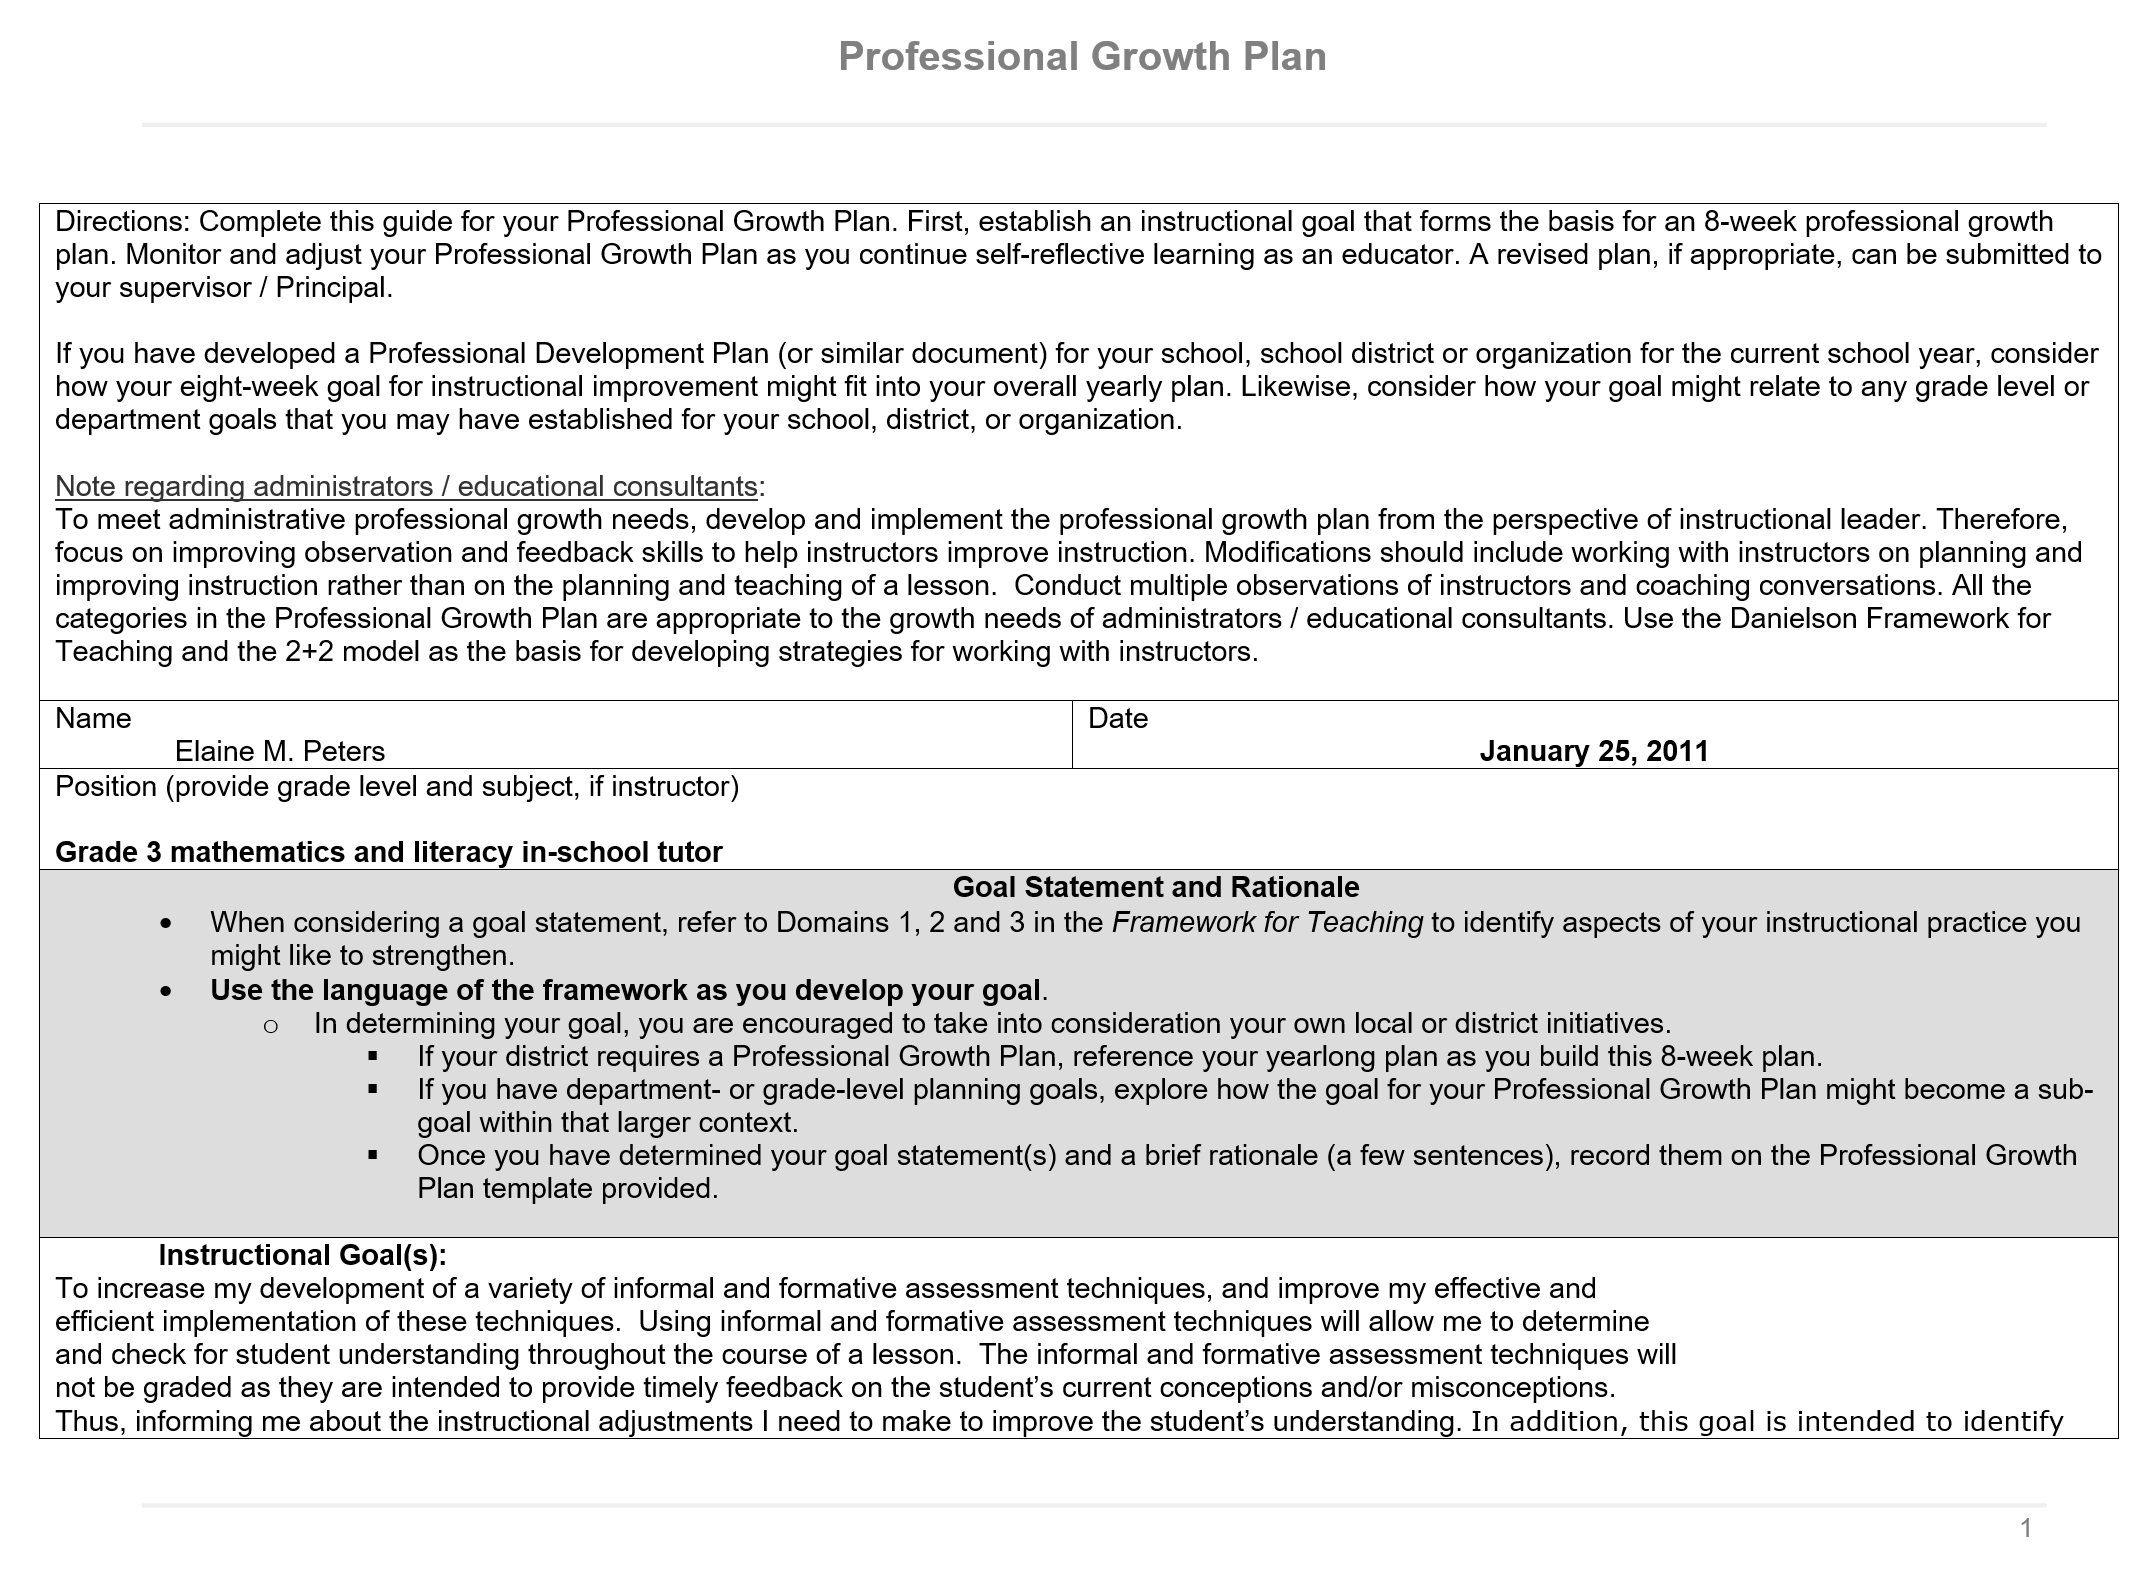 professional growth plan p 1 of 7.PNG